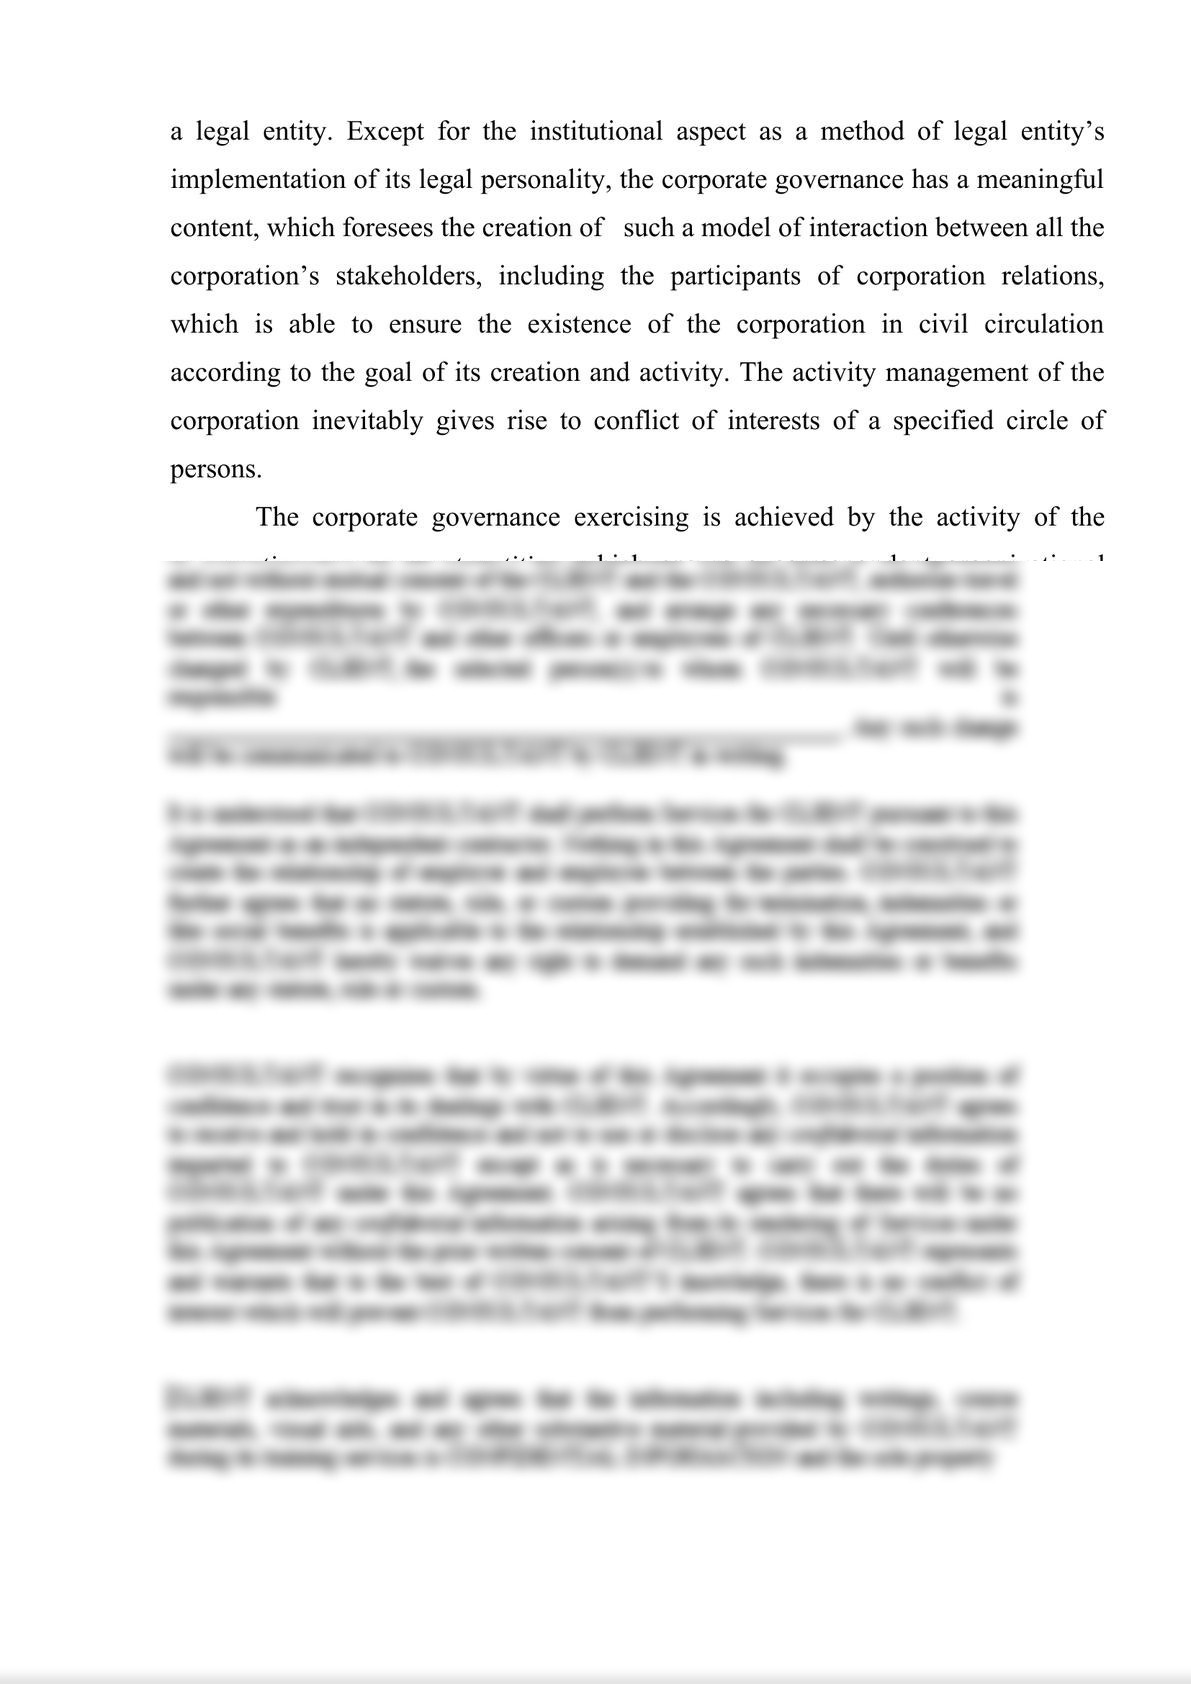 LEGAL ASPECTS OF THE CORPORATE GOVERNANCE-1